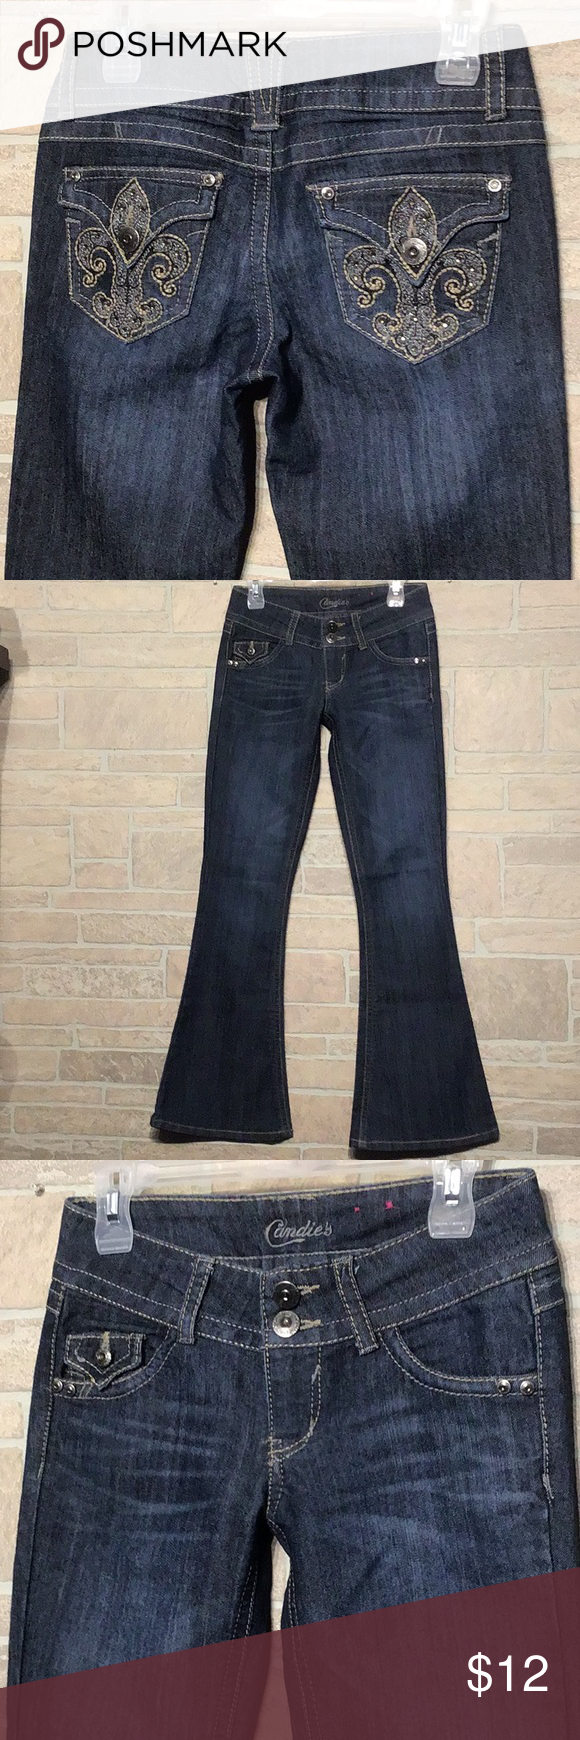 Candie S Sz 1 Bling Flare Jeans Like New Candie S Sz 1